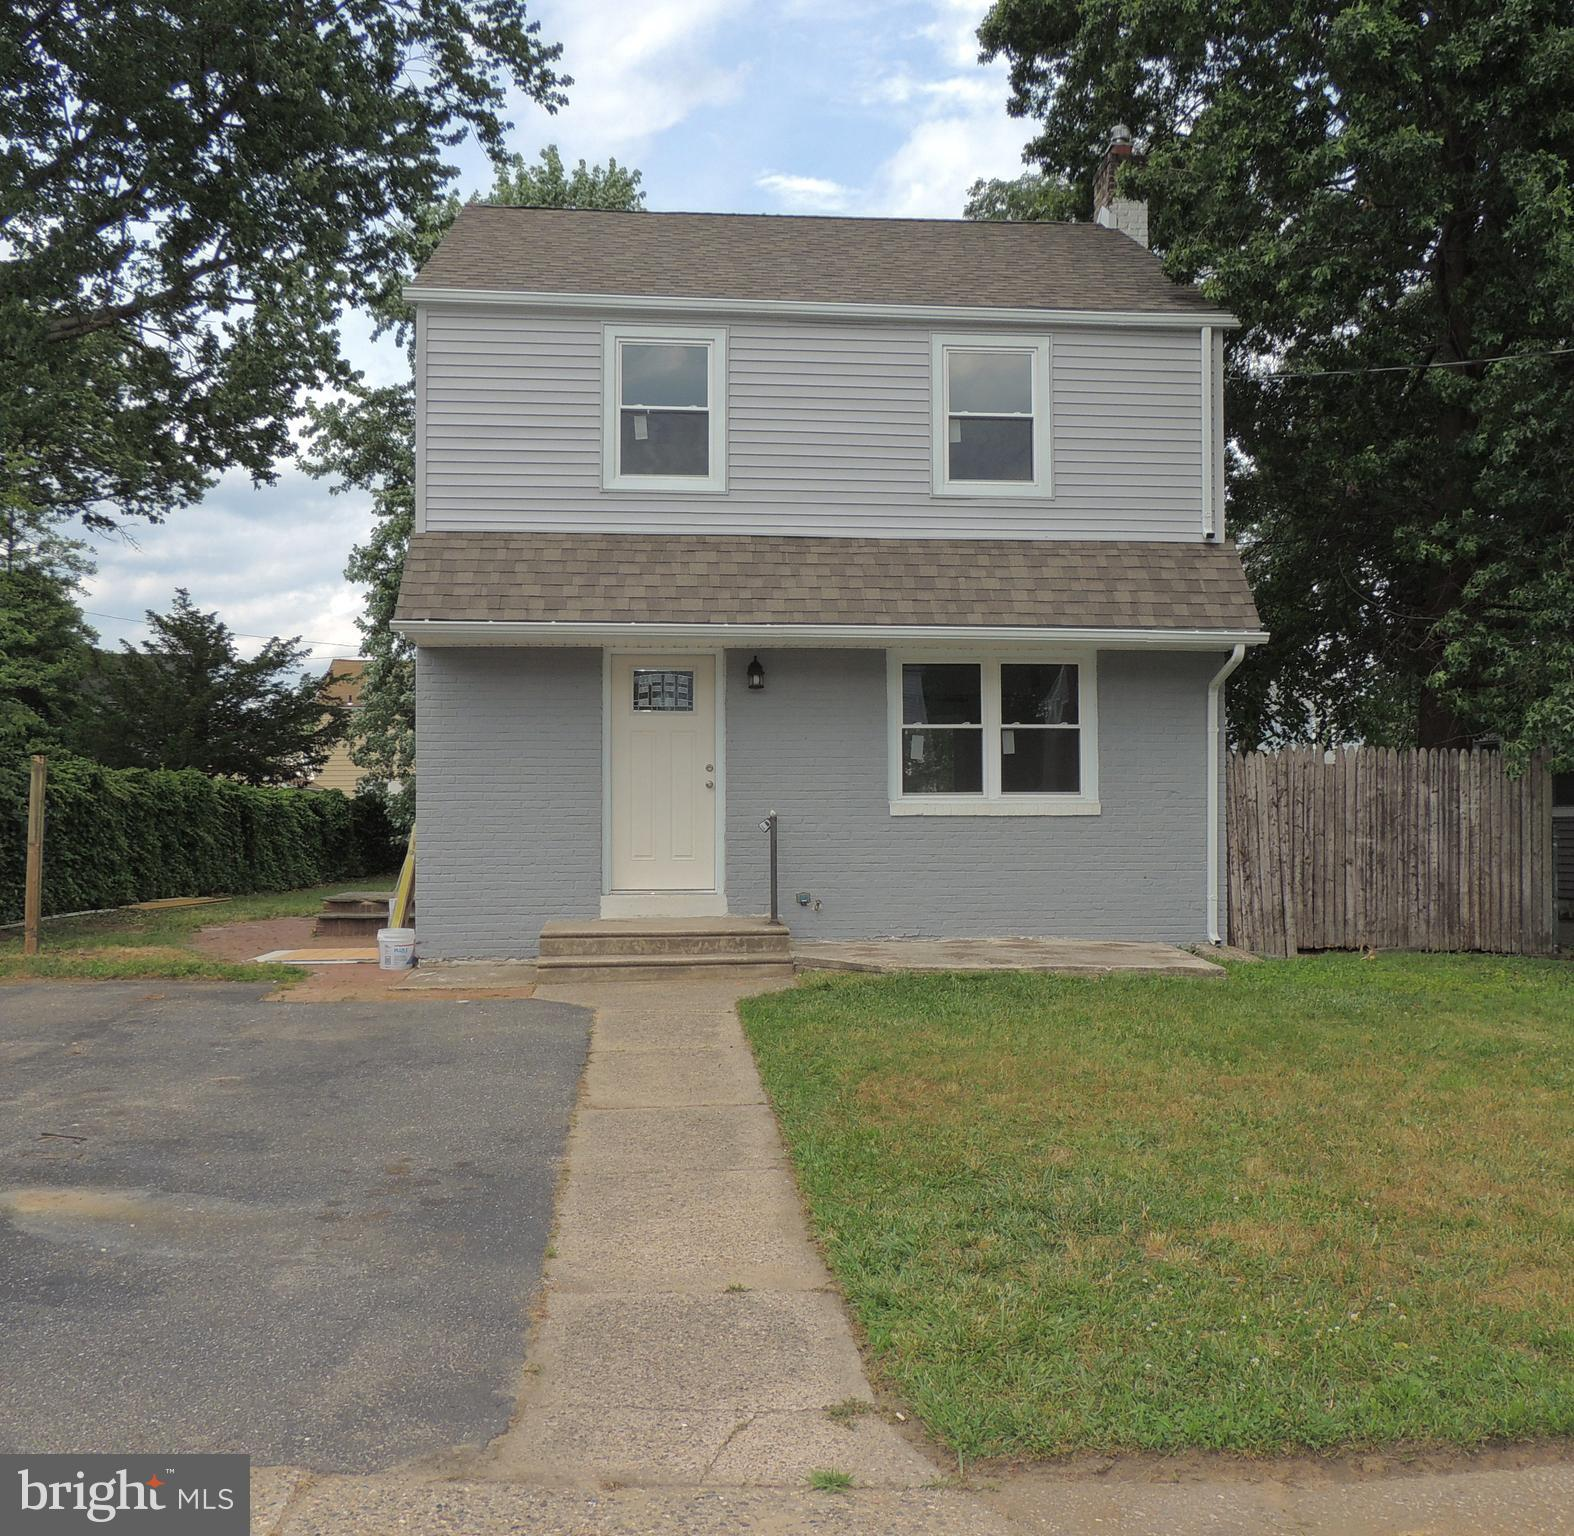 2218 Gross Avenue, Pennsauken, NJ 08110